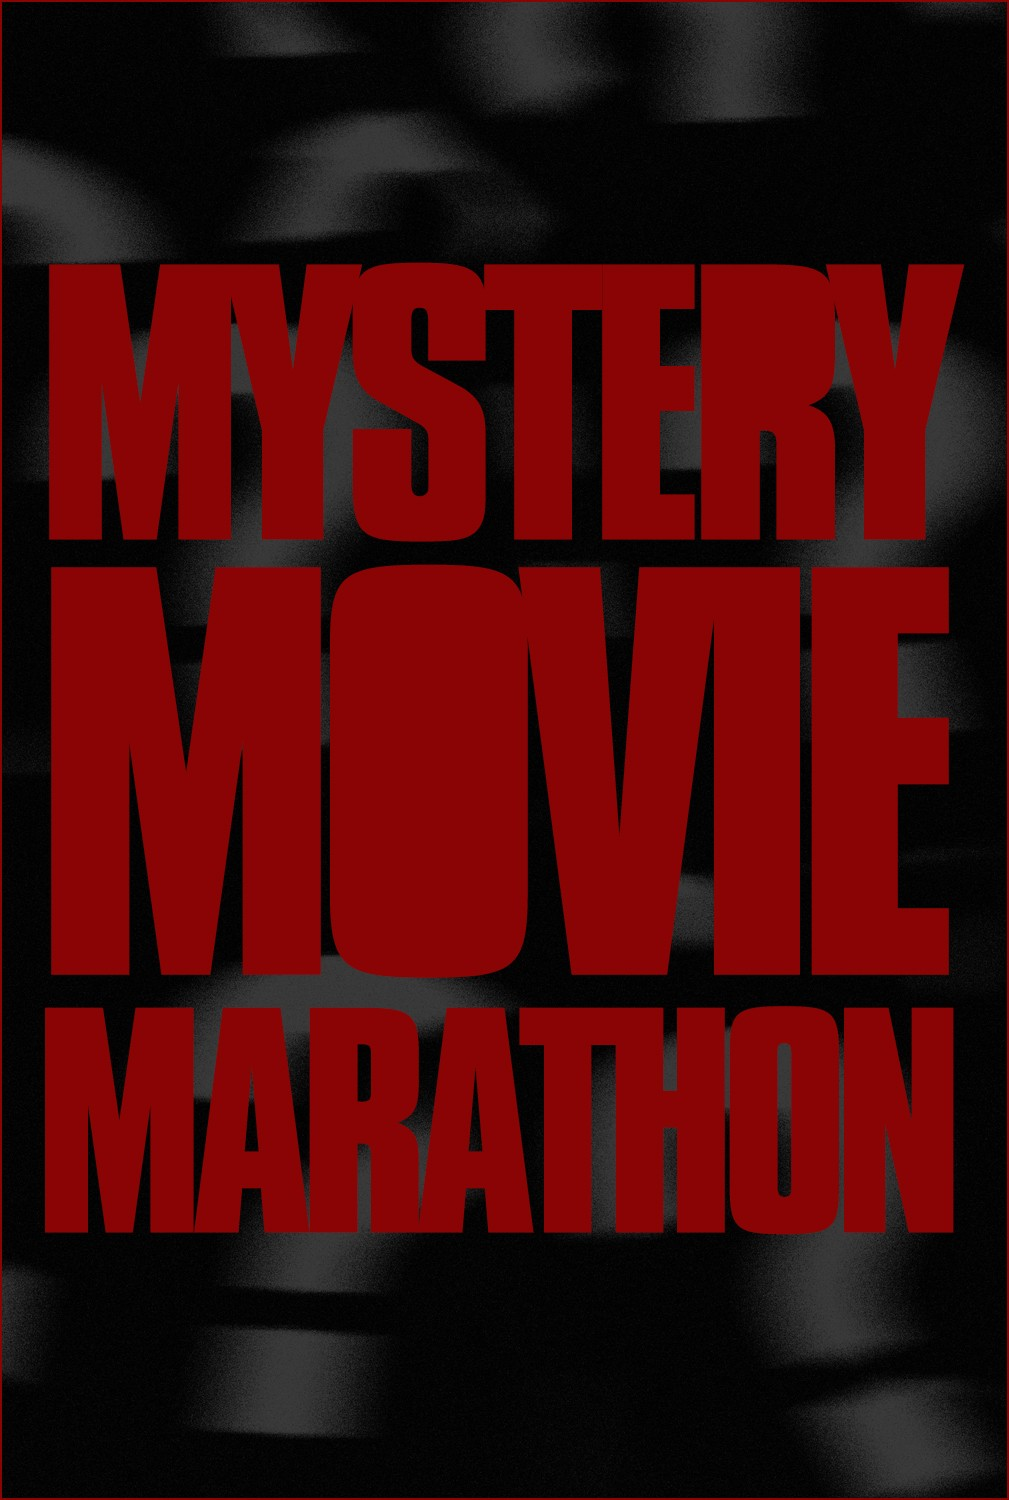 MYSTERY MOVIE MARATHON